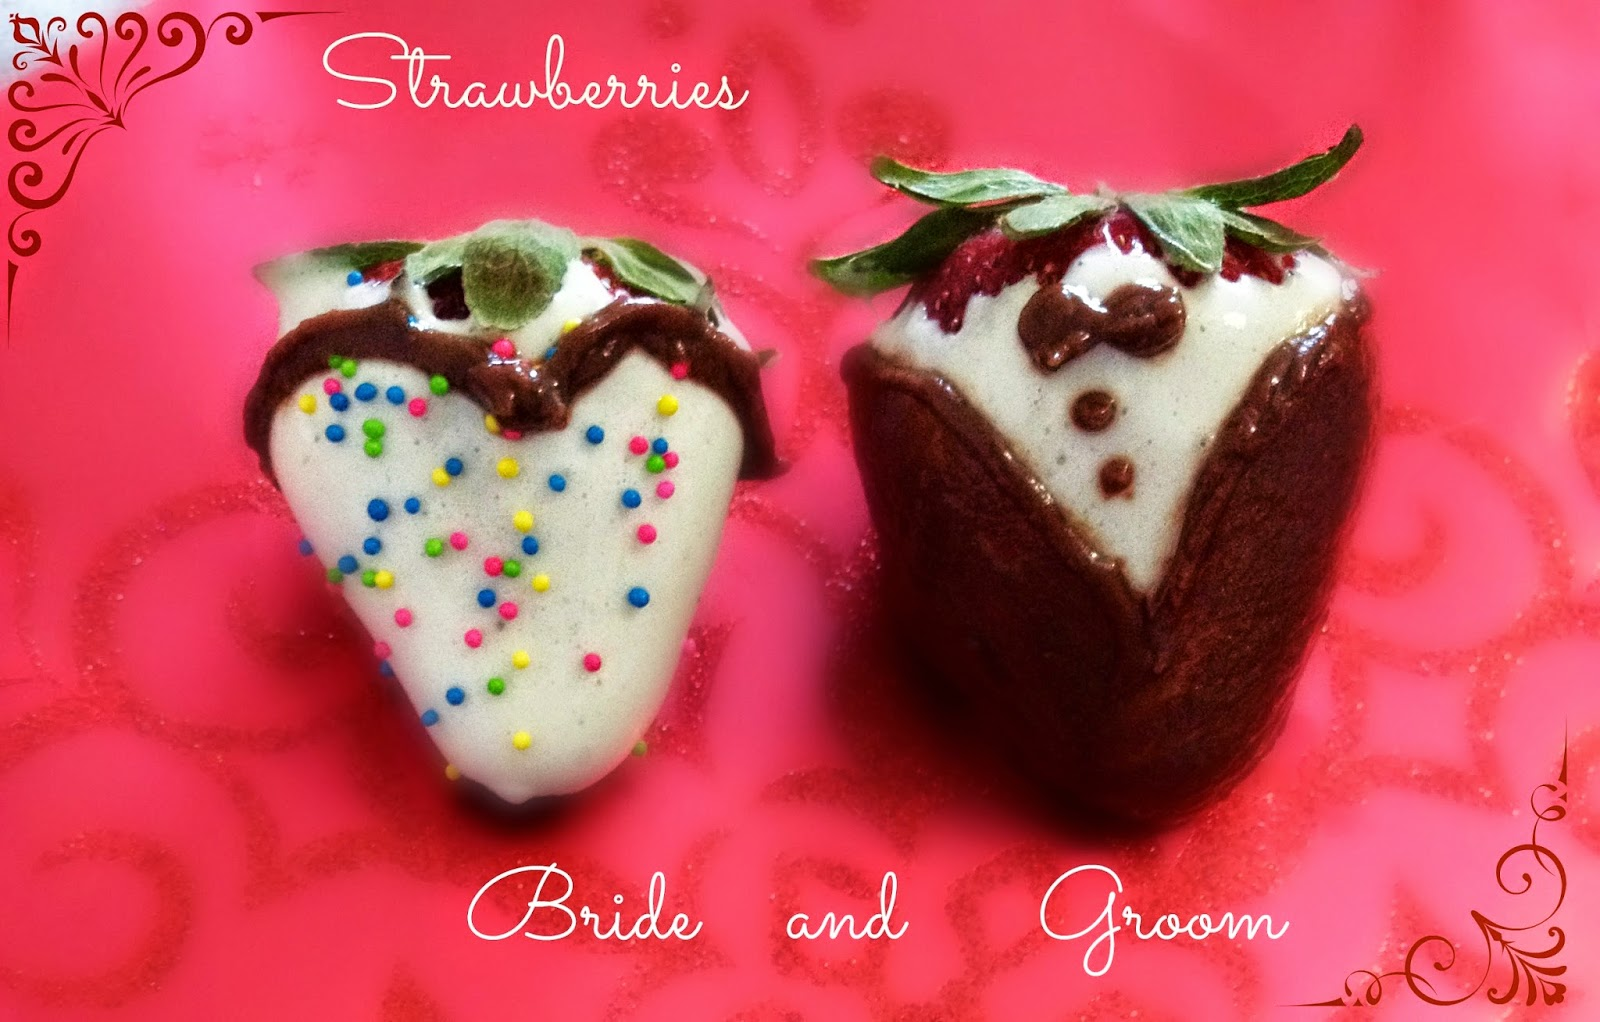 Strawberries bride and Groom